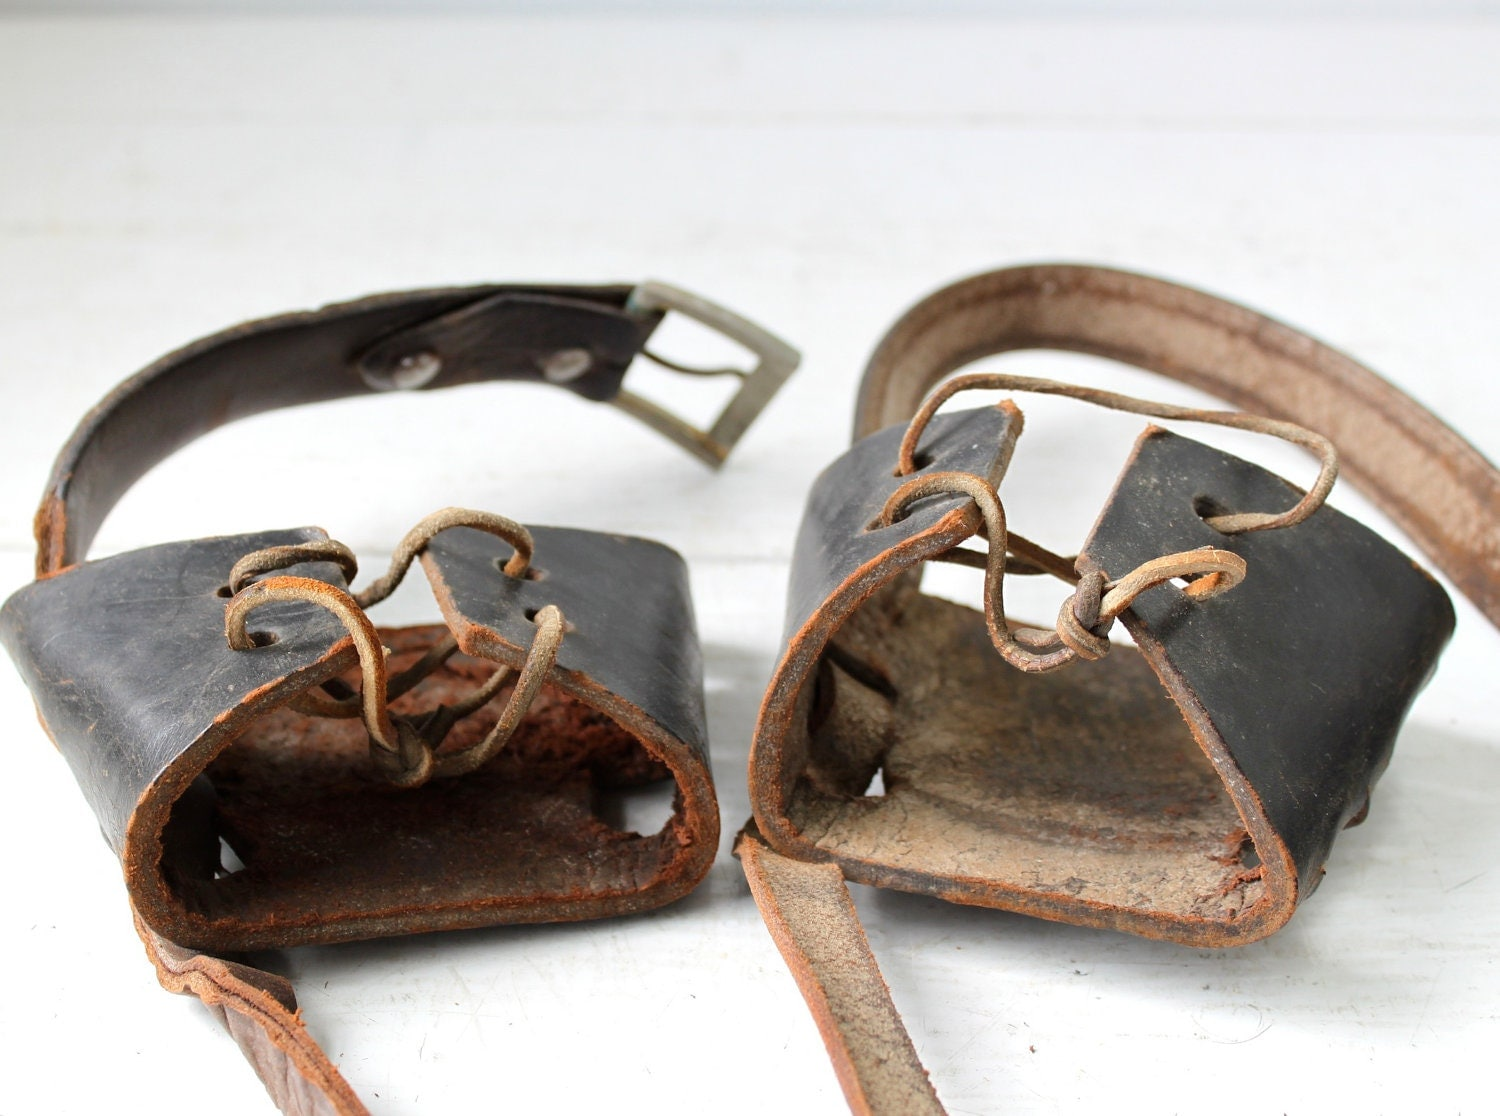 dating vintage snowshoes Yellow dating app tinder is a location-based social search mobile app that allows users to like (swipe right) or dislike (swipe left) other users, and allows users to chat if both.